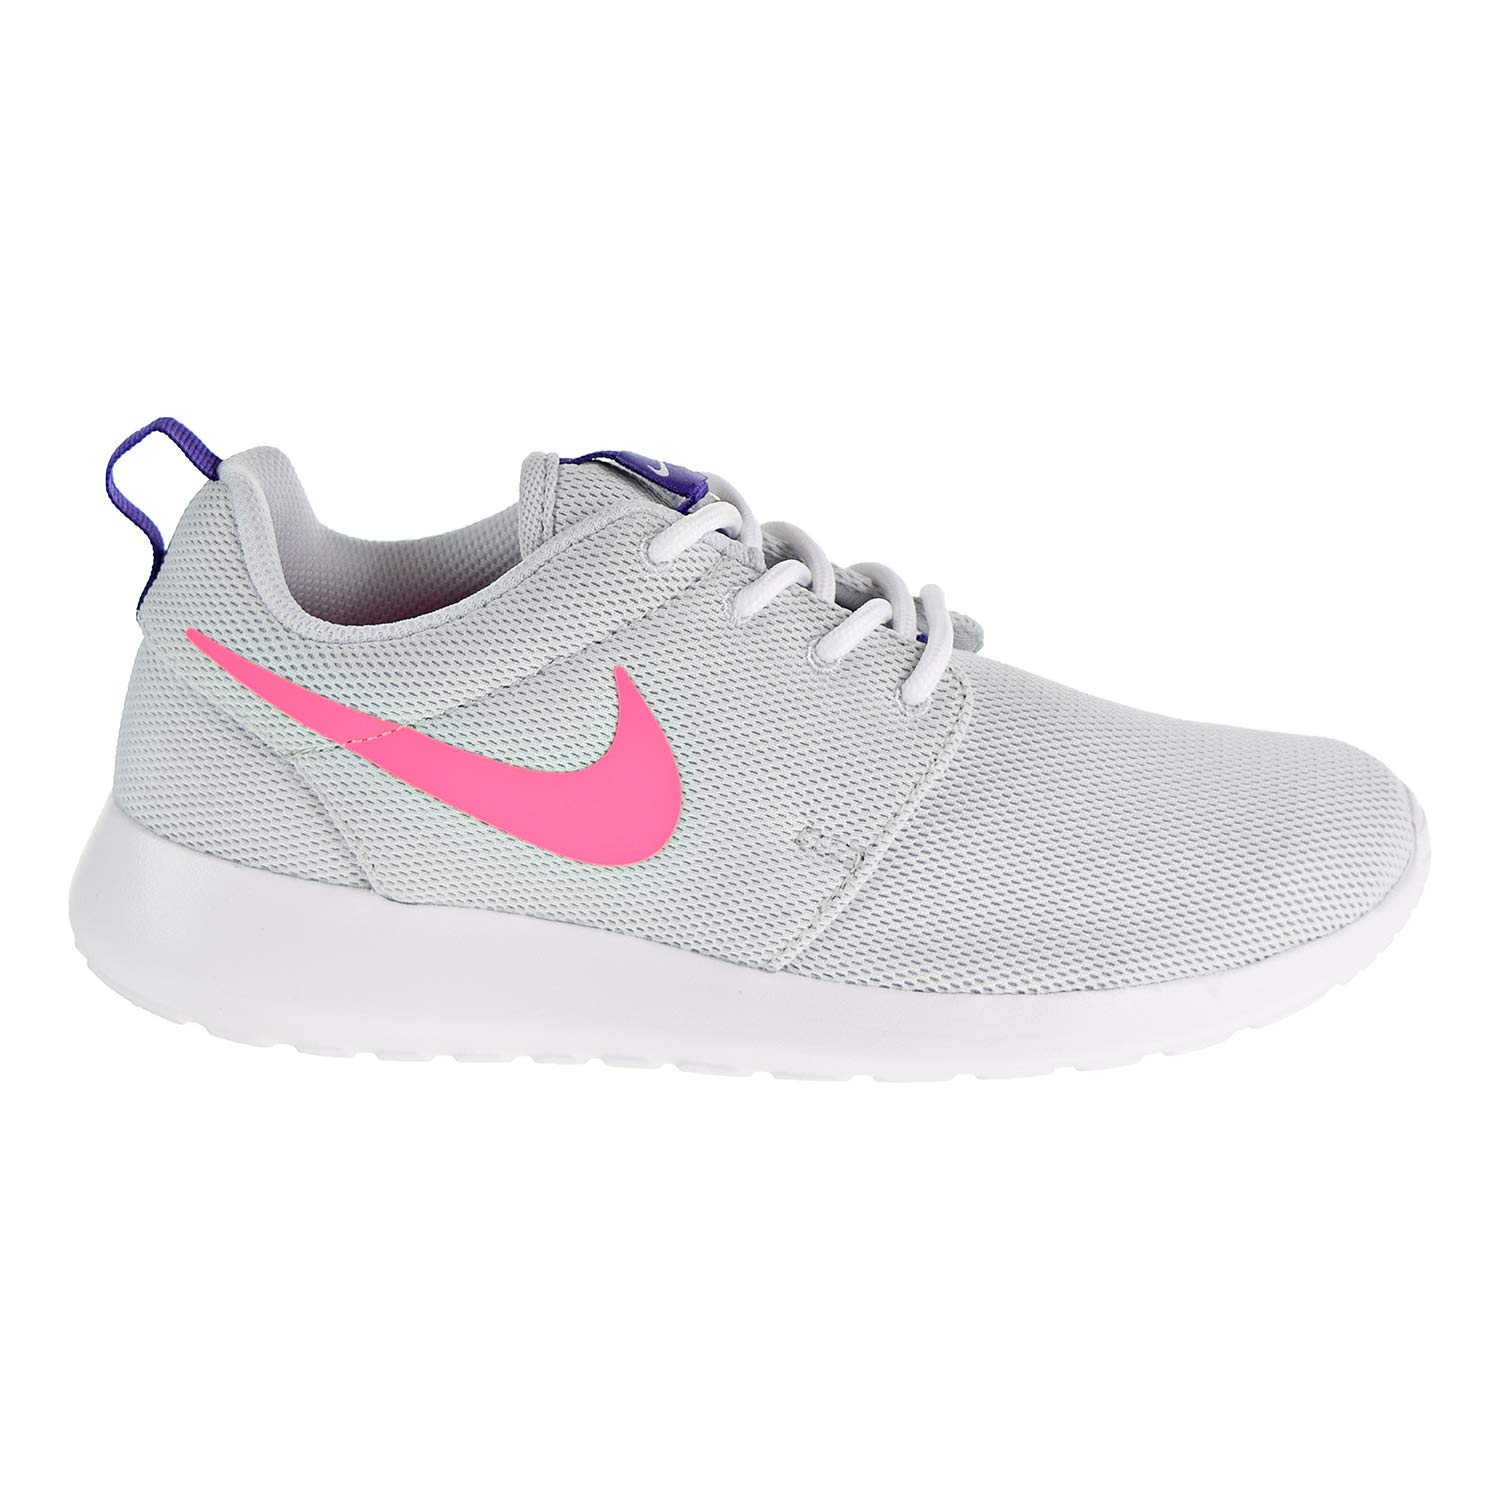 NIKE Roshe One Women's Shoes Pure PlatinumLaser Pink 844994 007 (6.5 B(M) US)